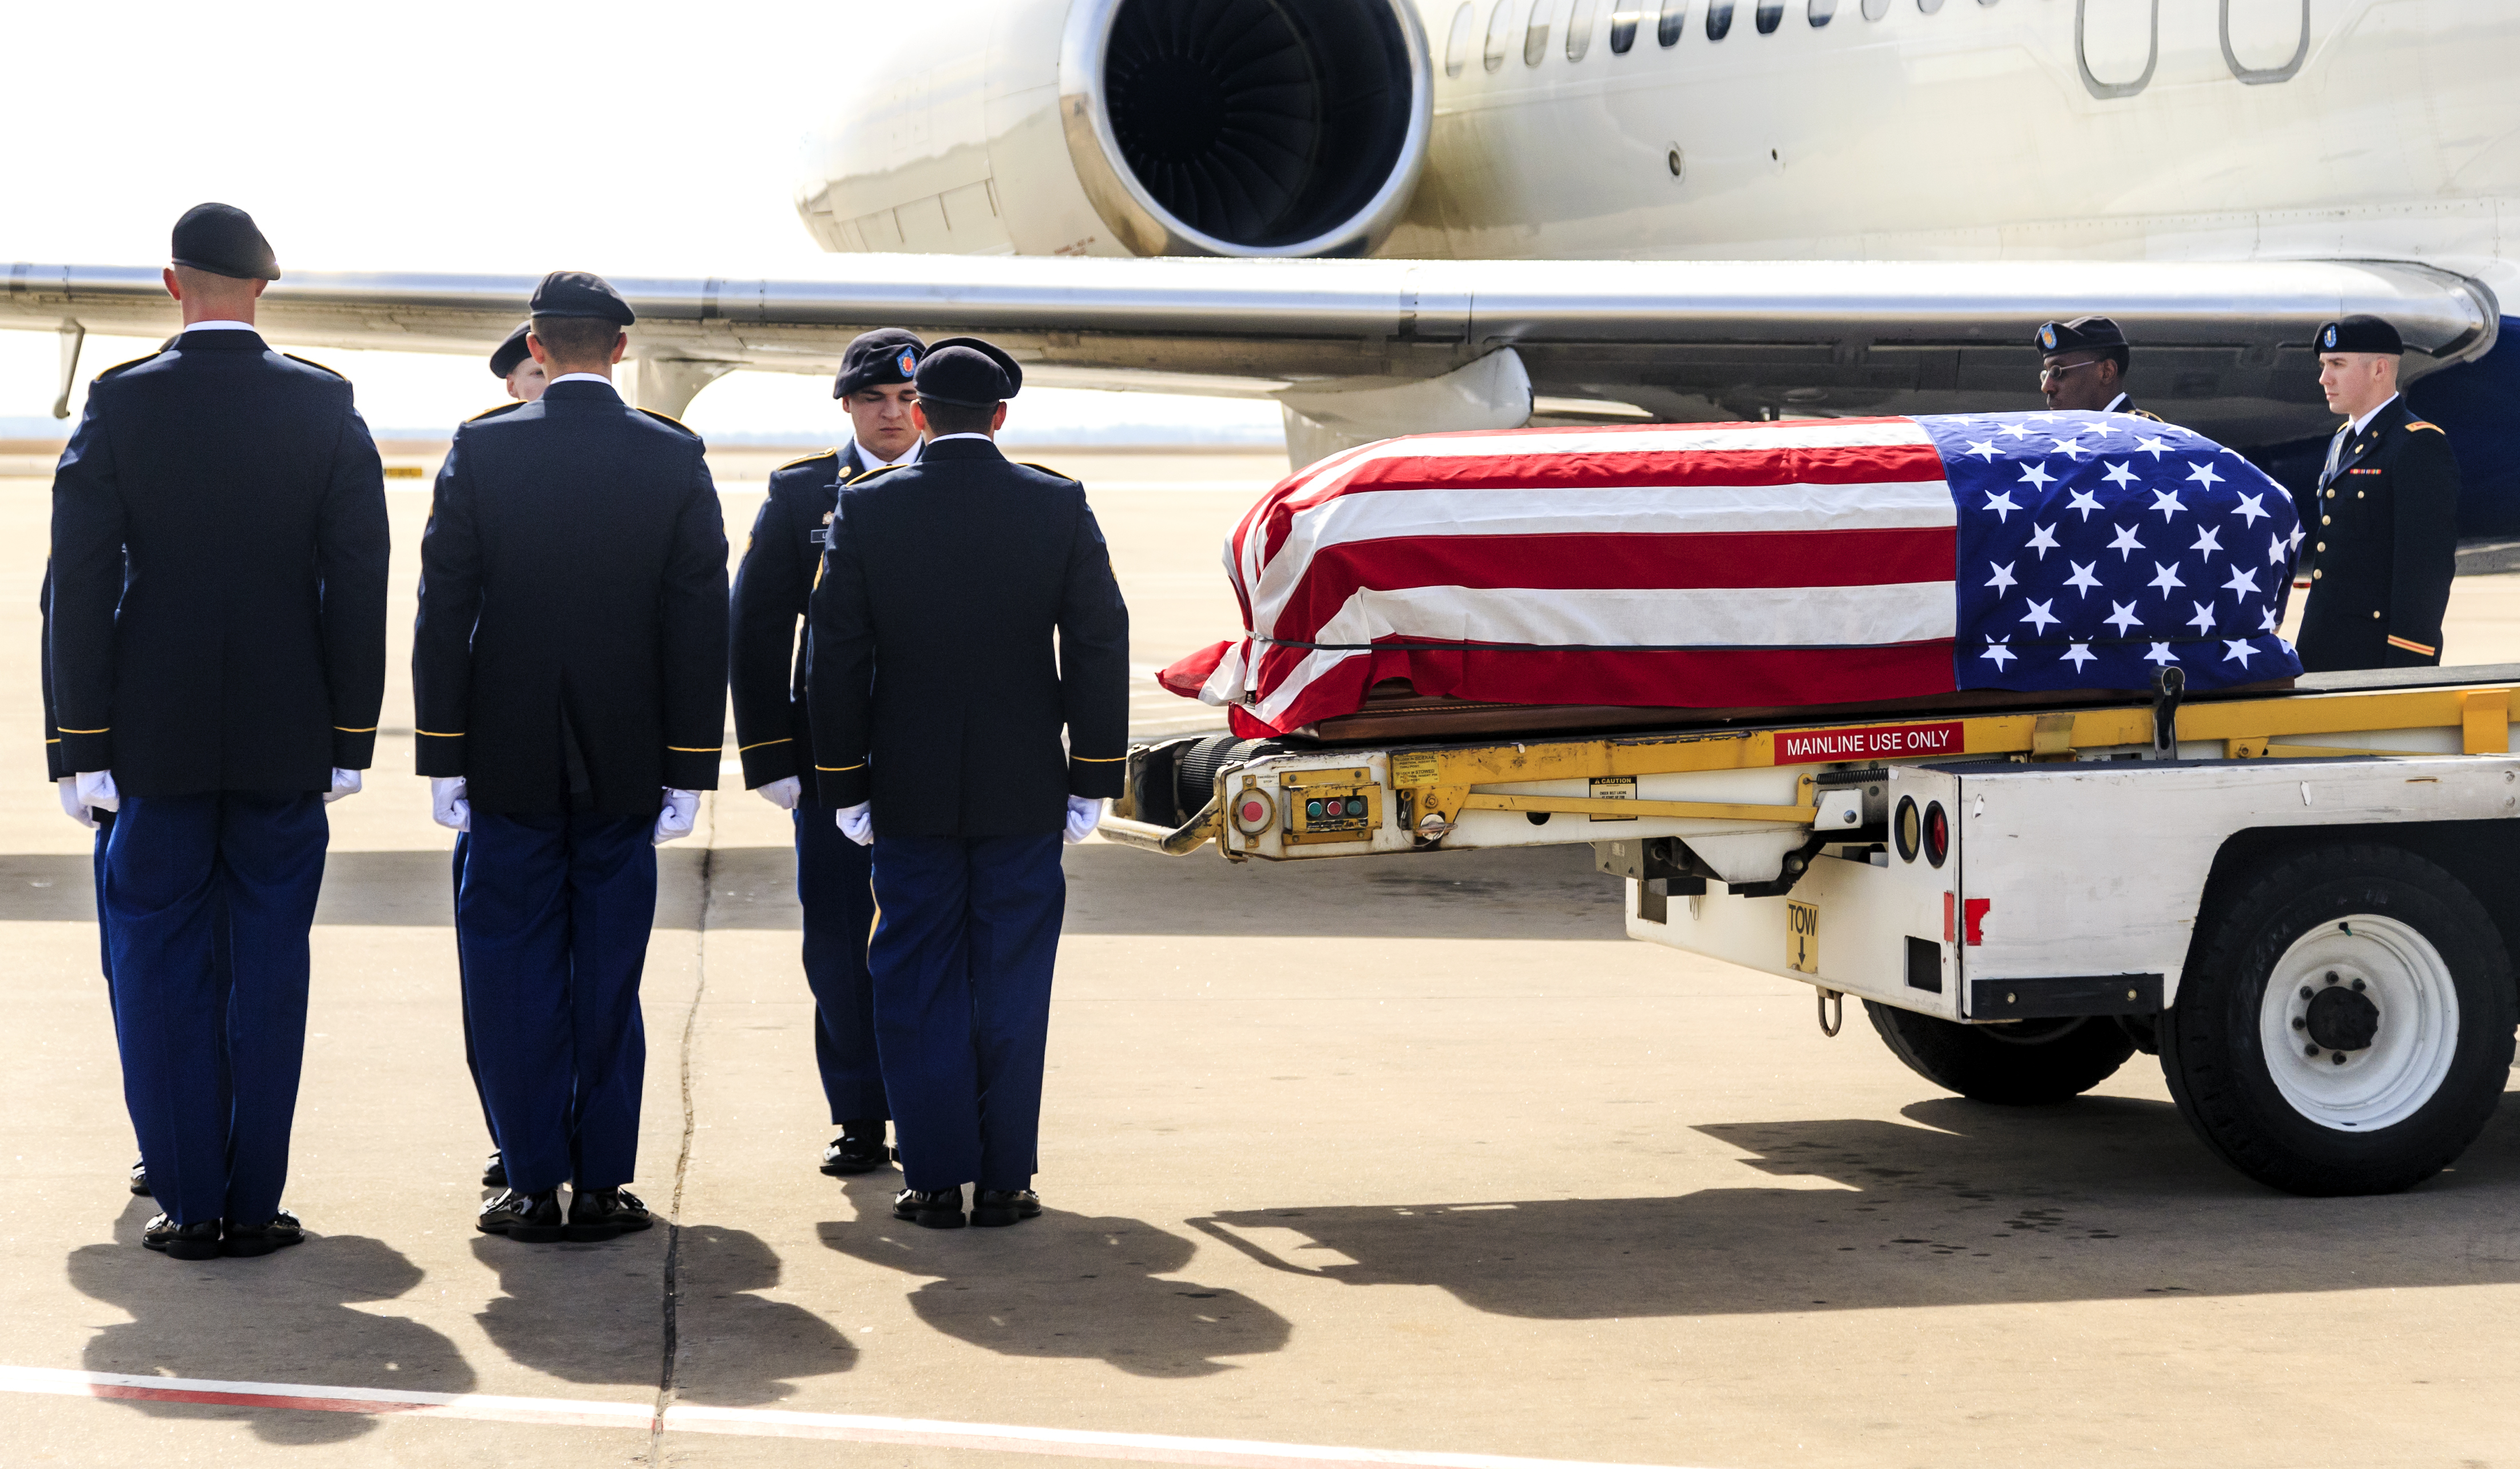 In this Wednesday, Feb. 14, 2018, photo, the remains of WW II and Korean War Army veteran Alfred Bensinger Jr. are unloaded off of a Delta Airlines plane at Will Rogers World Airport in Oklahoma City, Okla. The remains of the soldier from Oklahoma City were returned to his home state nearly 70 years after he was taken prisoner during the Korean War. (Chris Landsberger/The Oklahoman via AP)